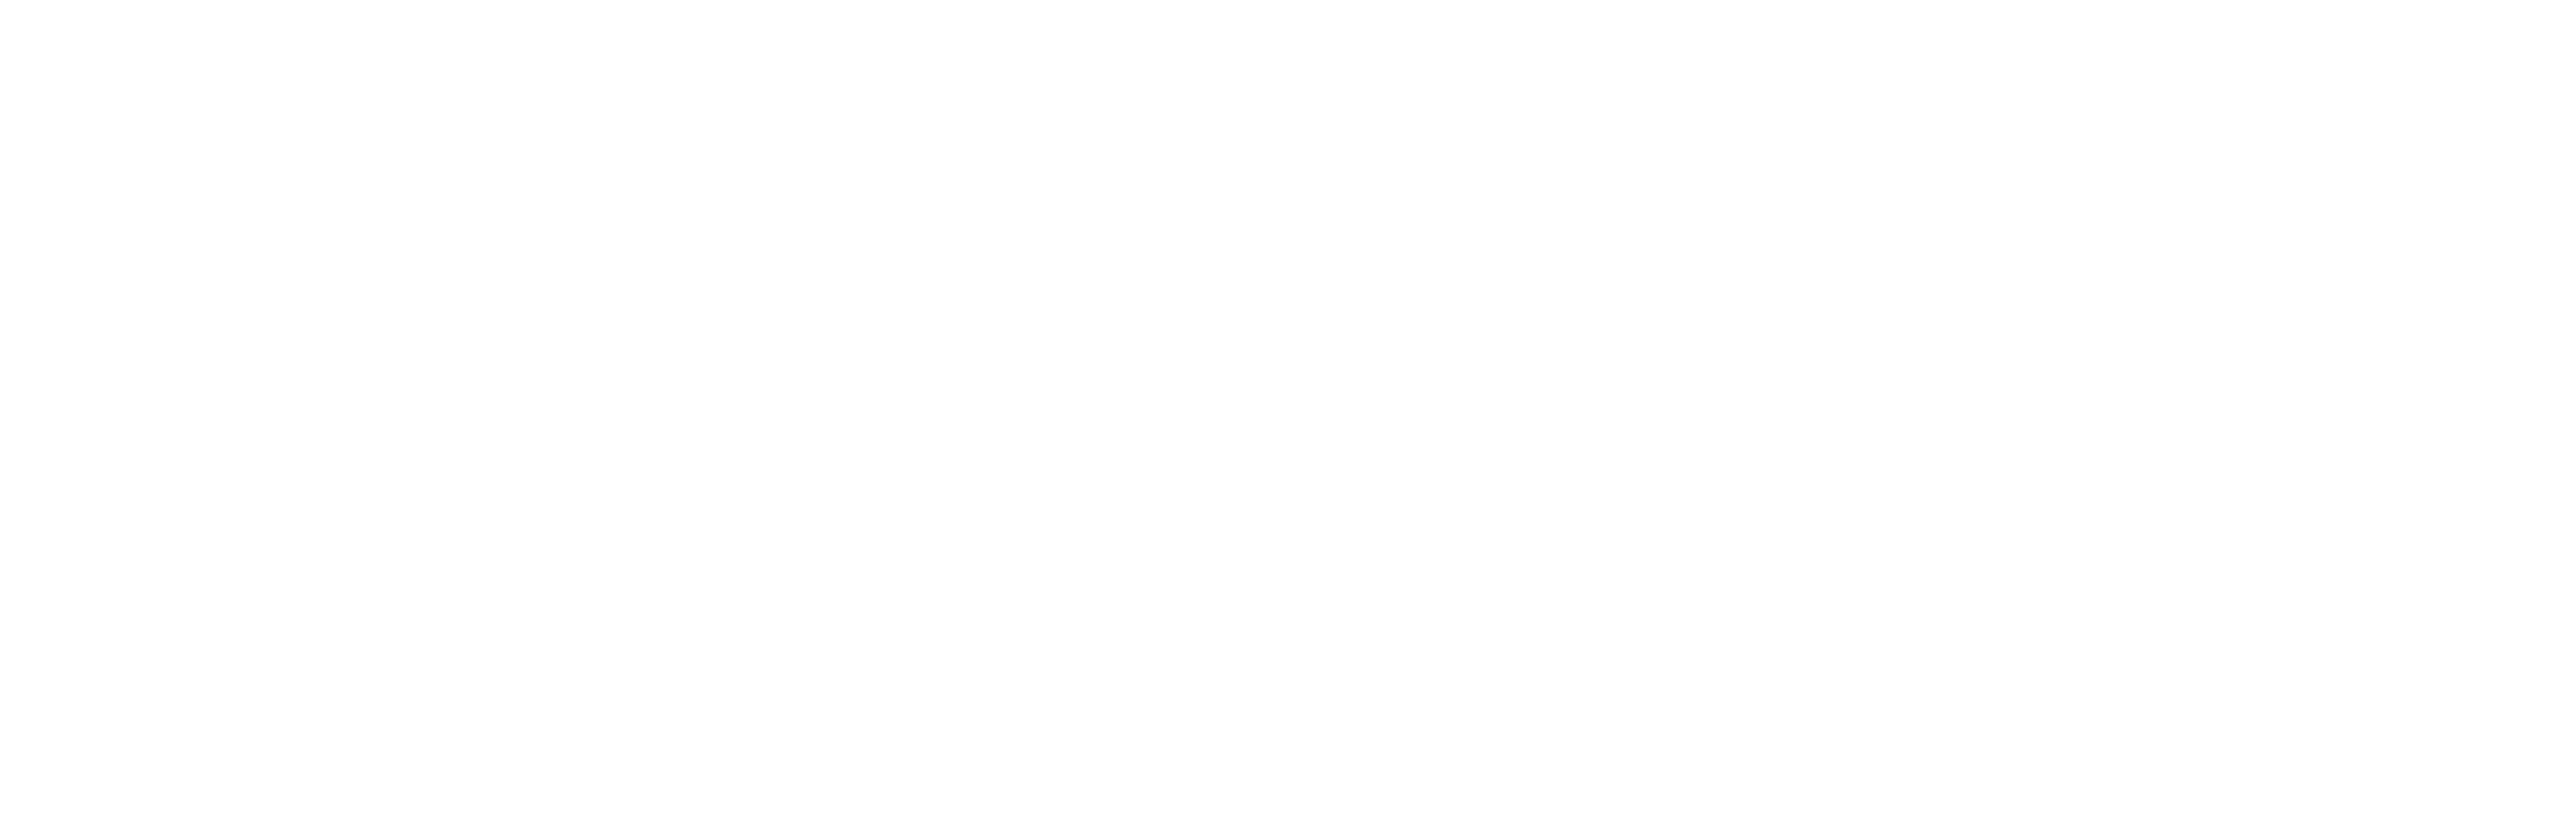 Rural Roots Florist - Flower Delivery in Vermilion, AB